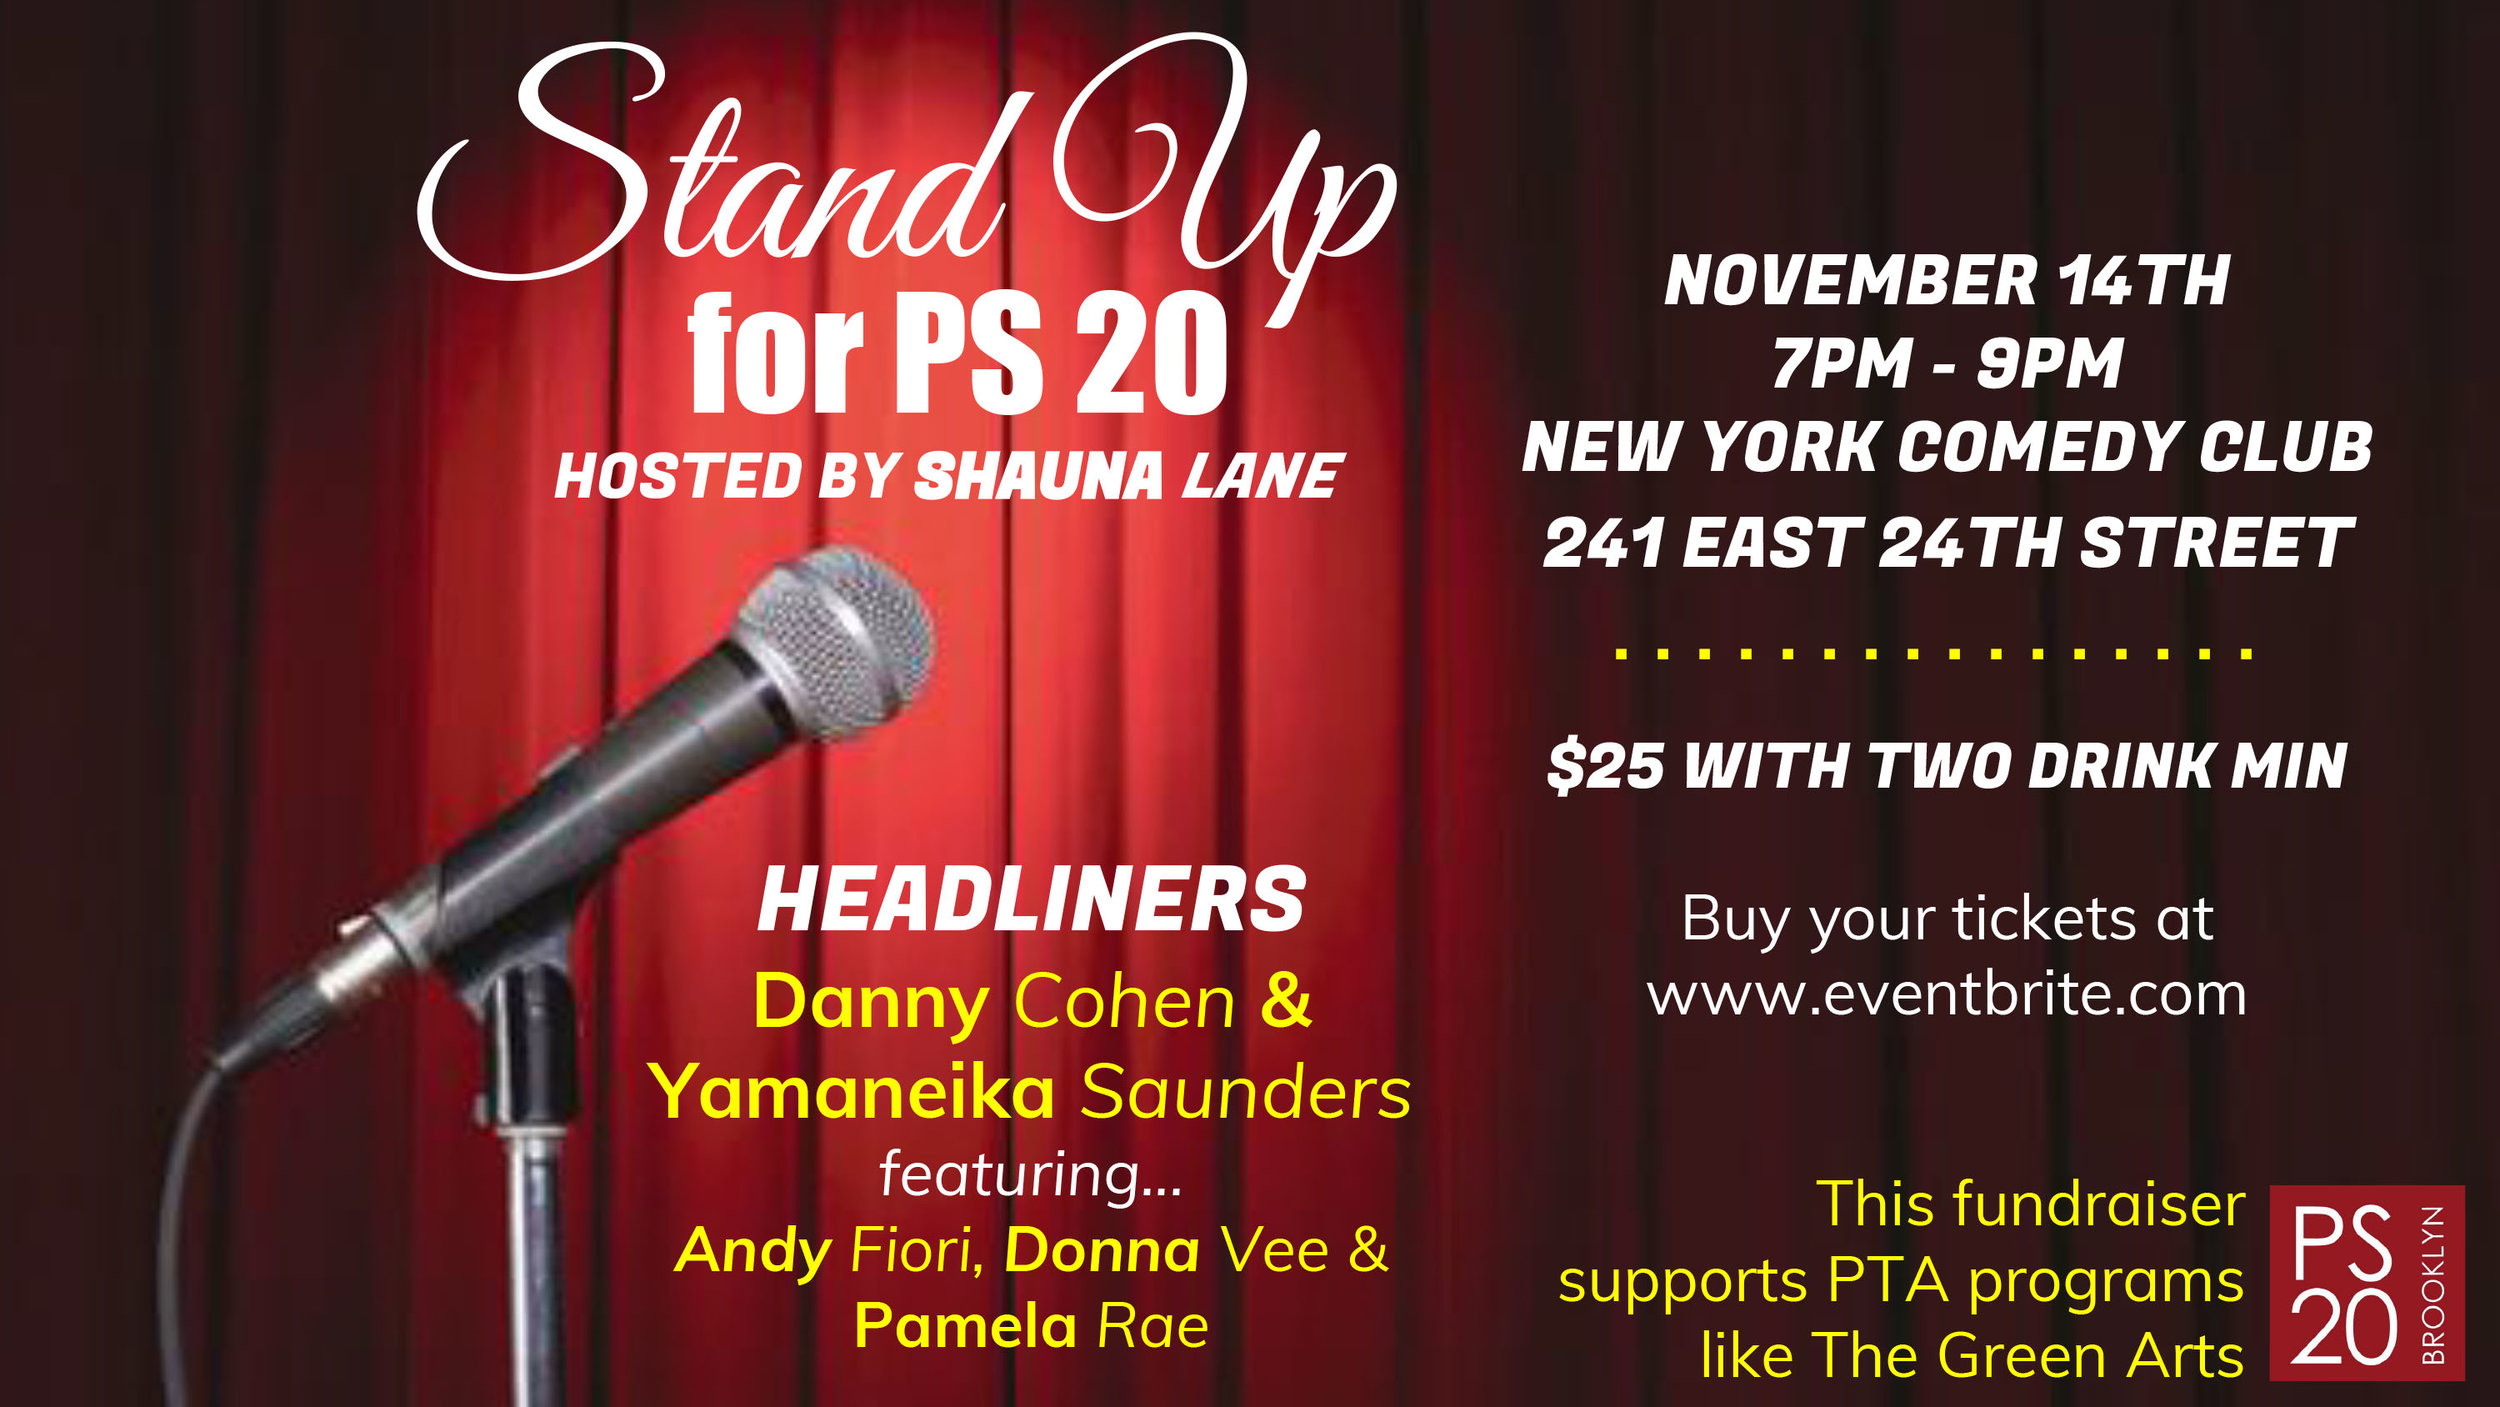 Stand Up for PS 20 Color.jpg